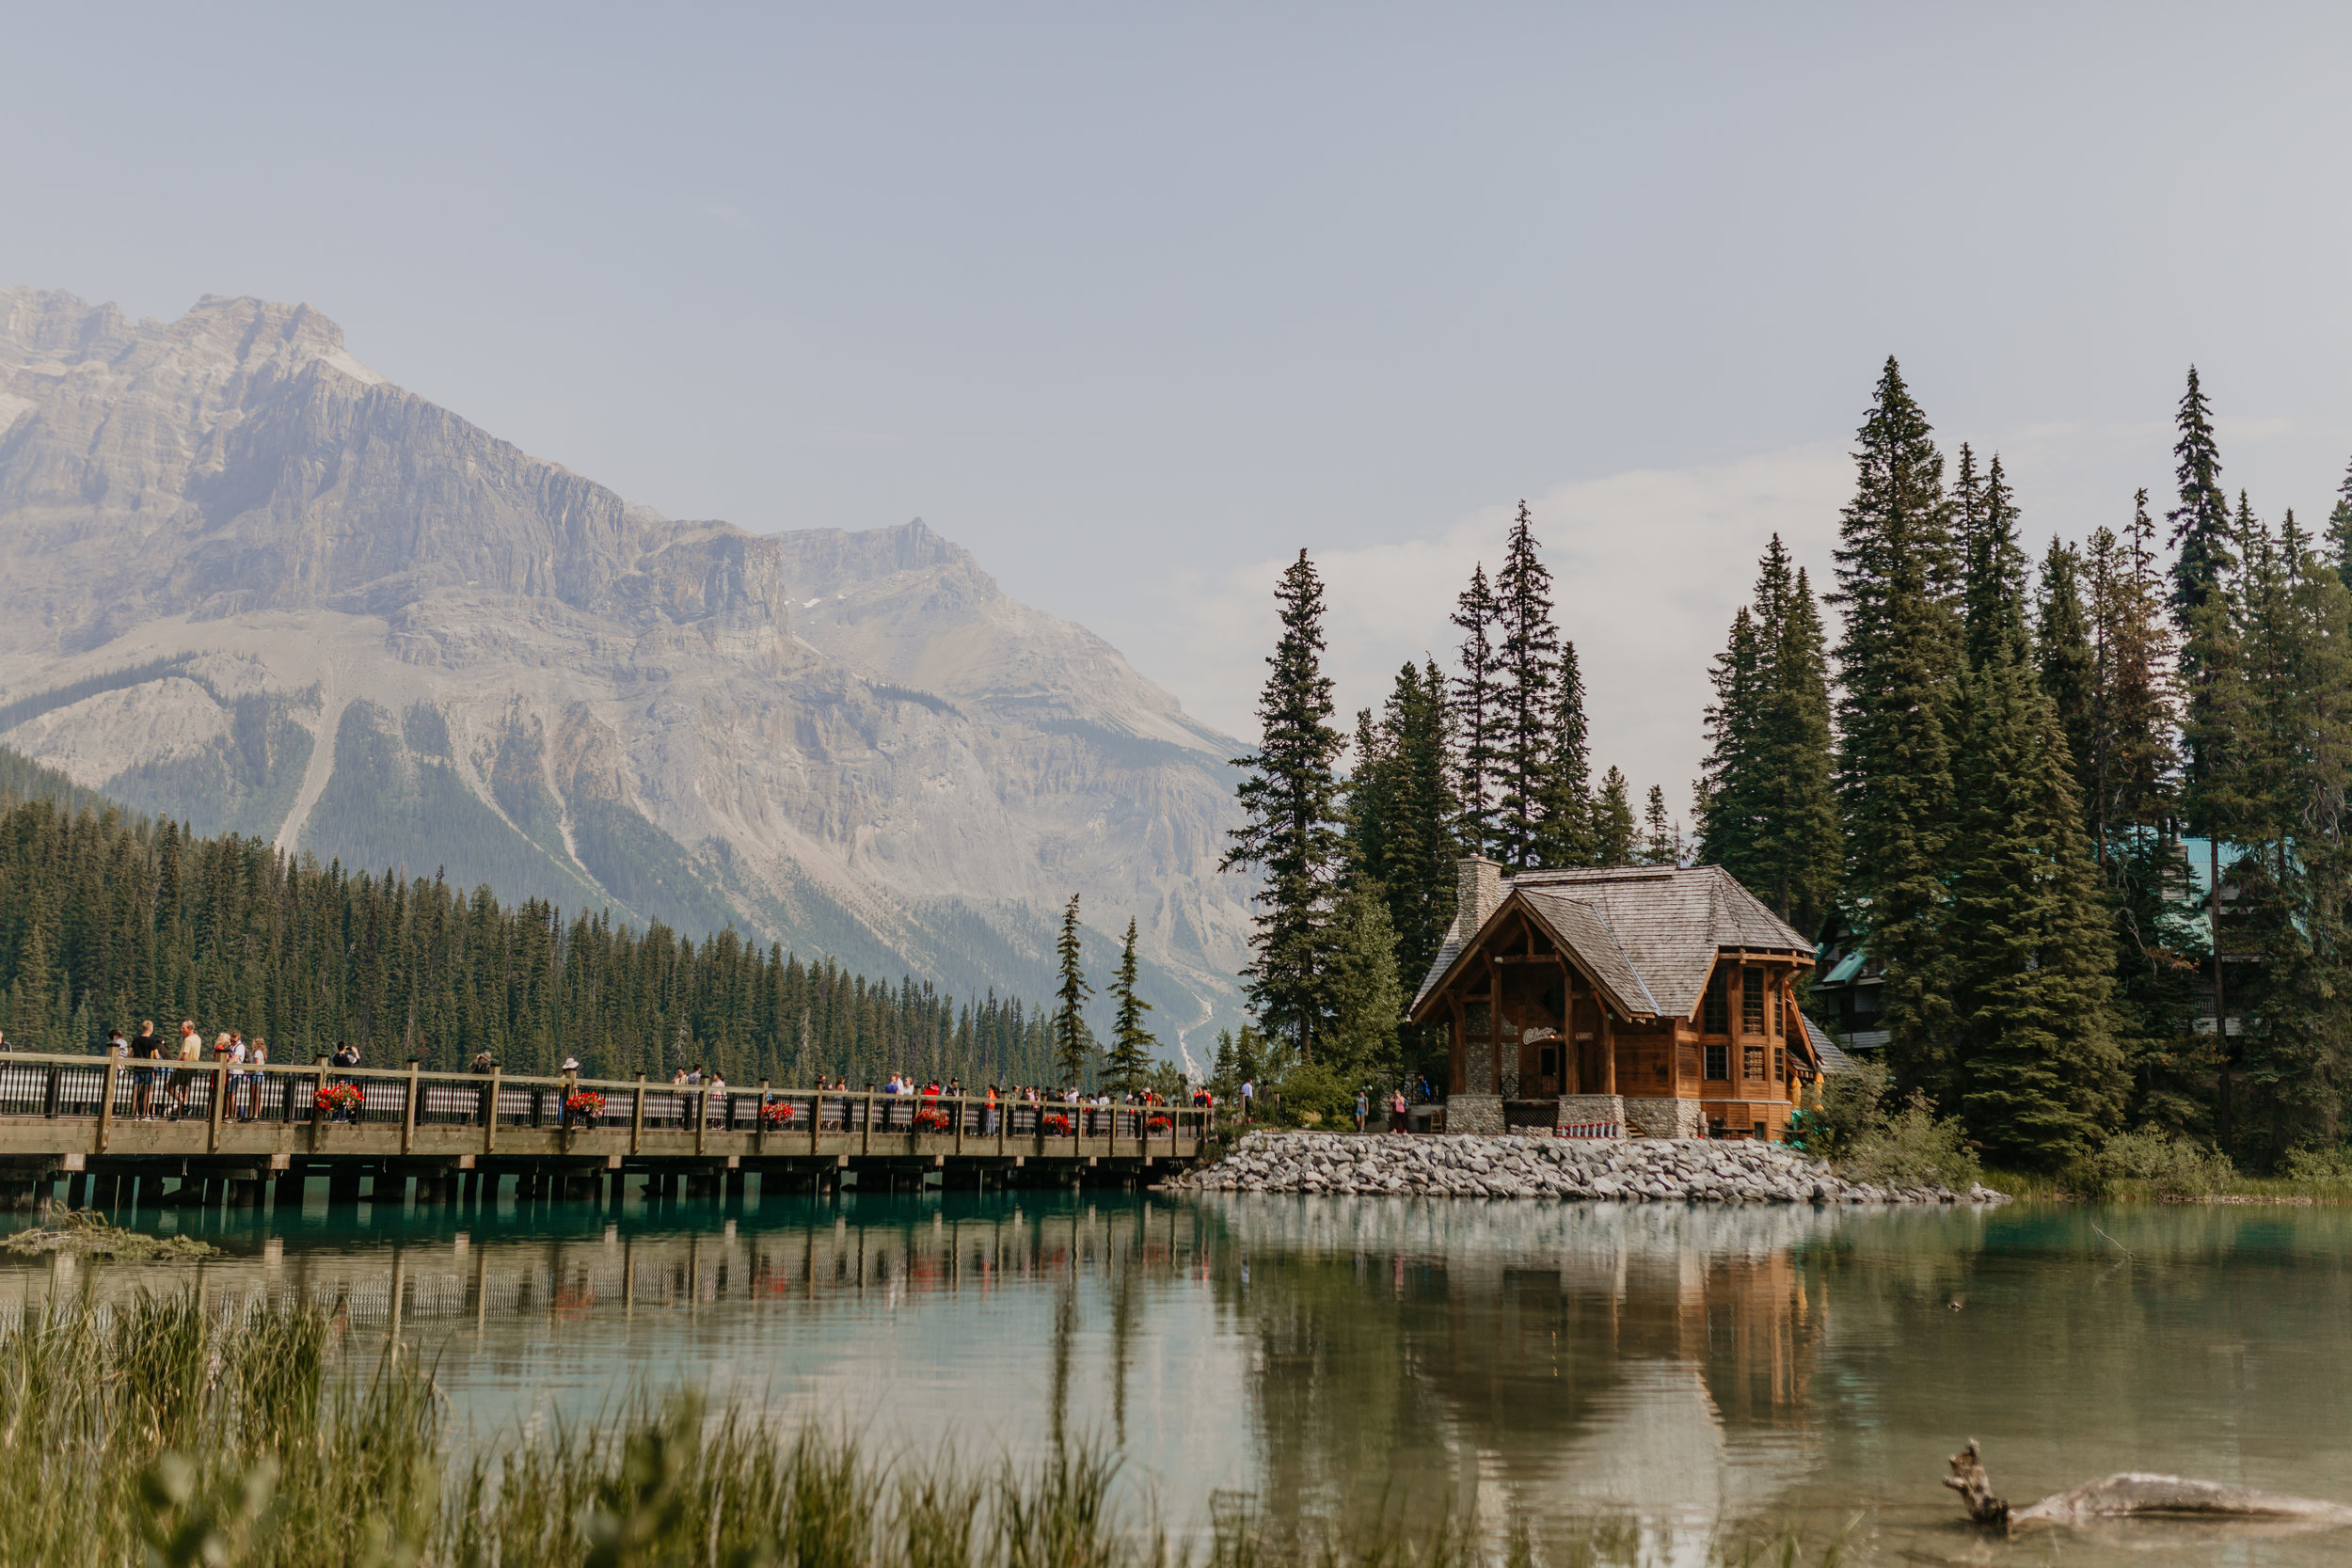 nicole-daacke-photography-banff-national-park-yoho-jasper-canada-parks-alberta-landscape-photographer-canadian-rockies-elopement-photographer-kananaskis-landscape-photos-0470.jpg